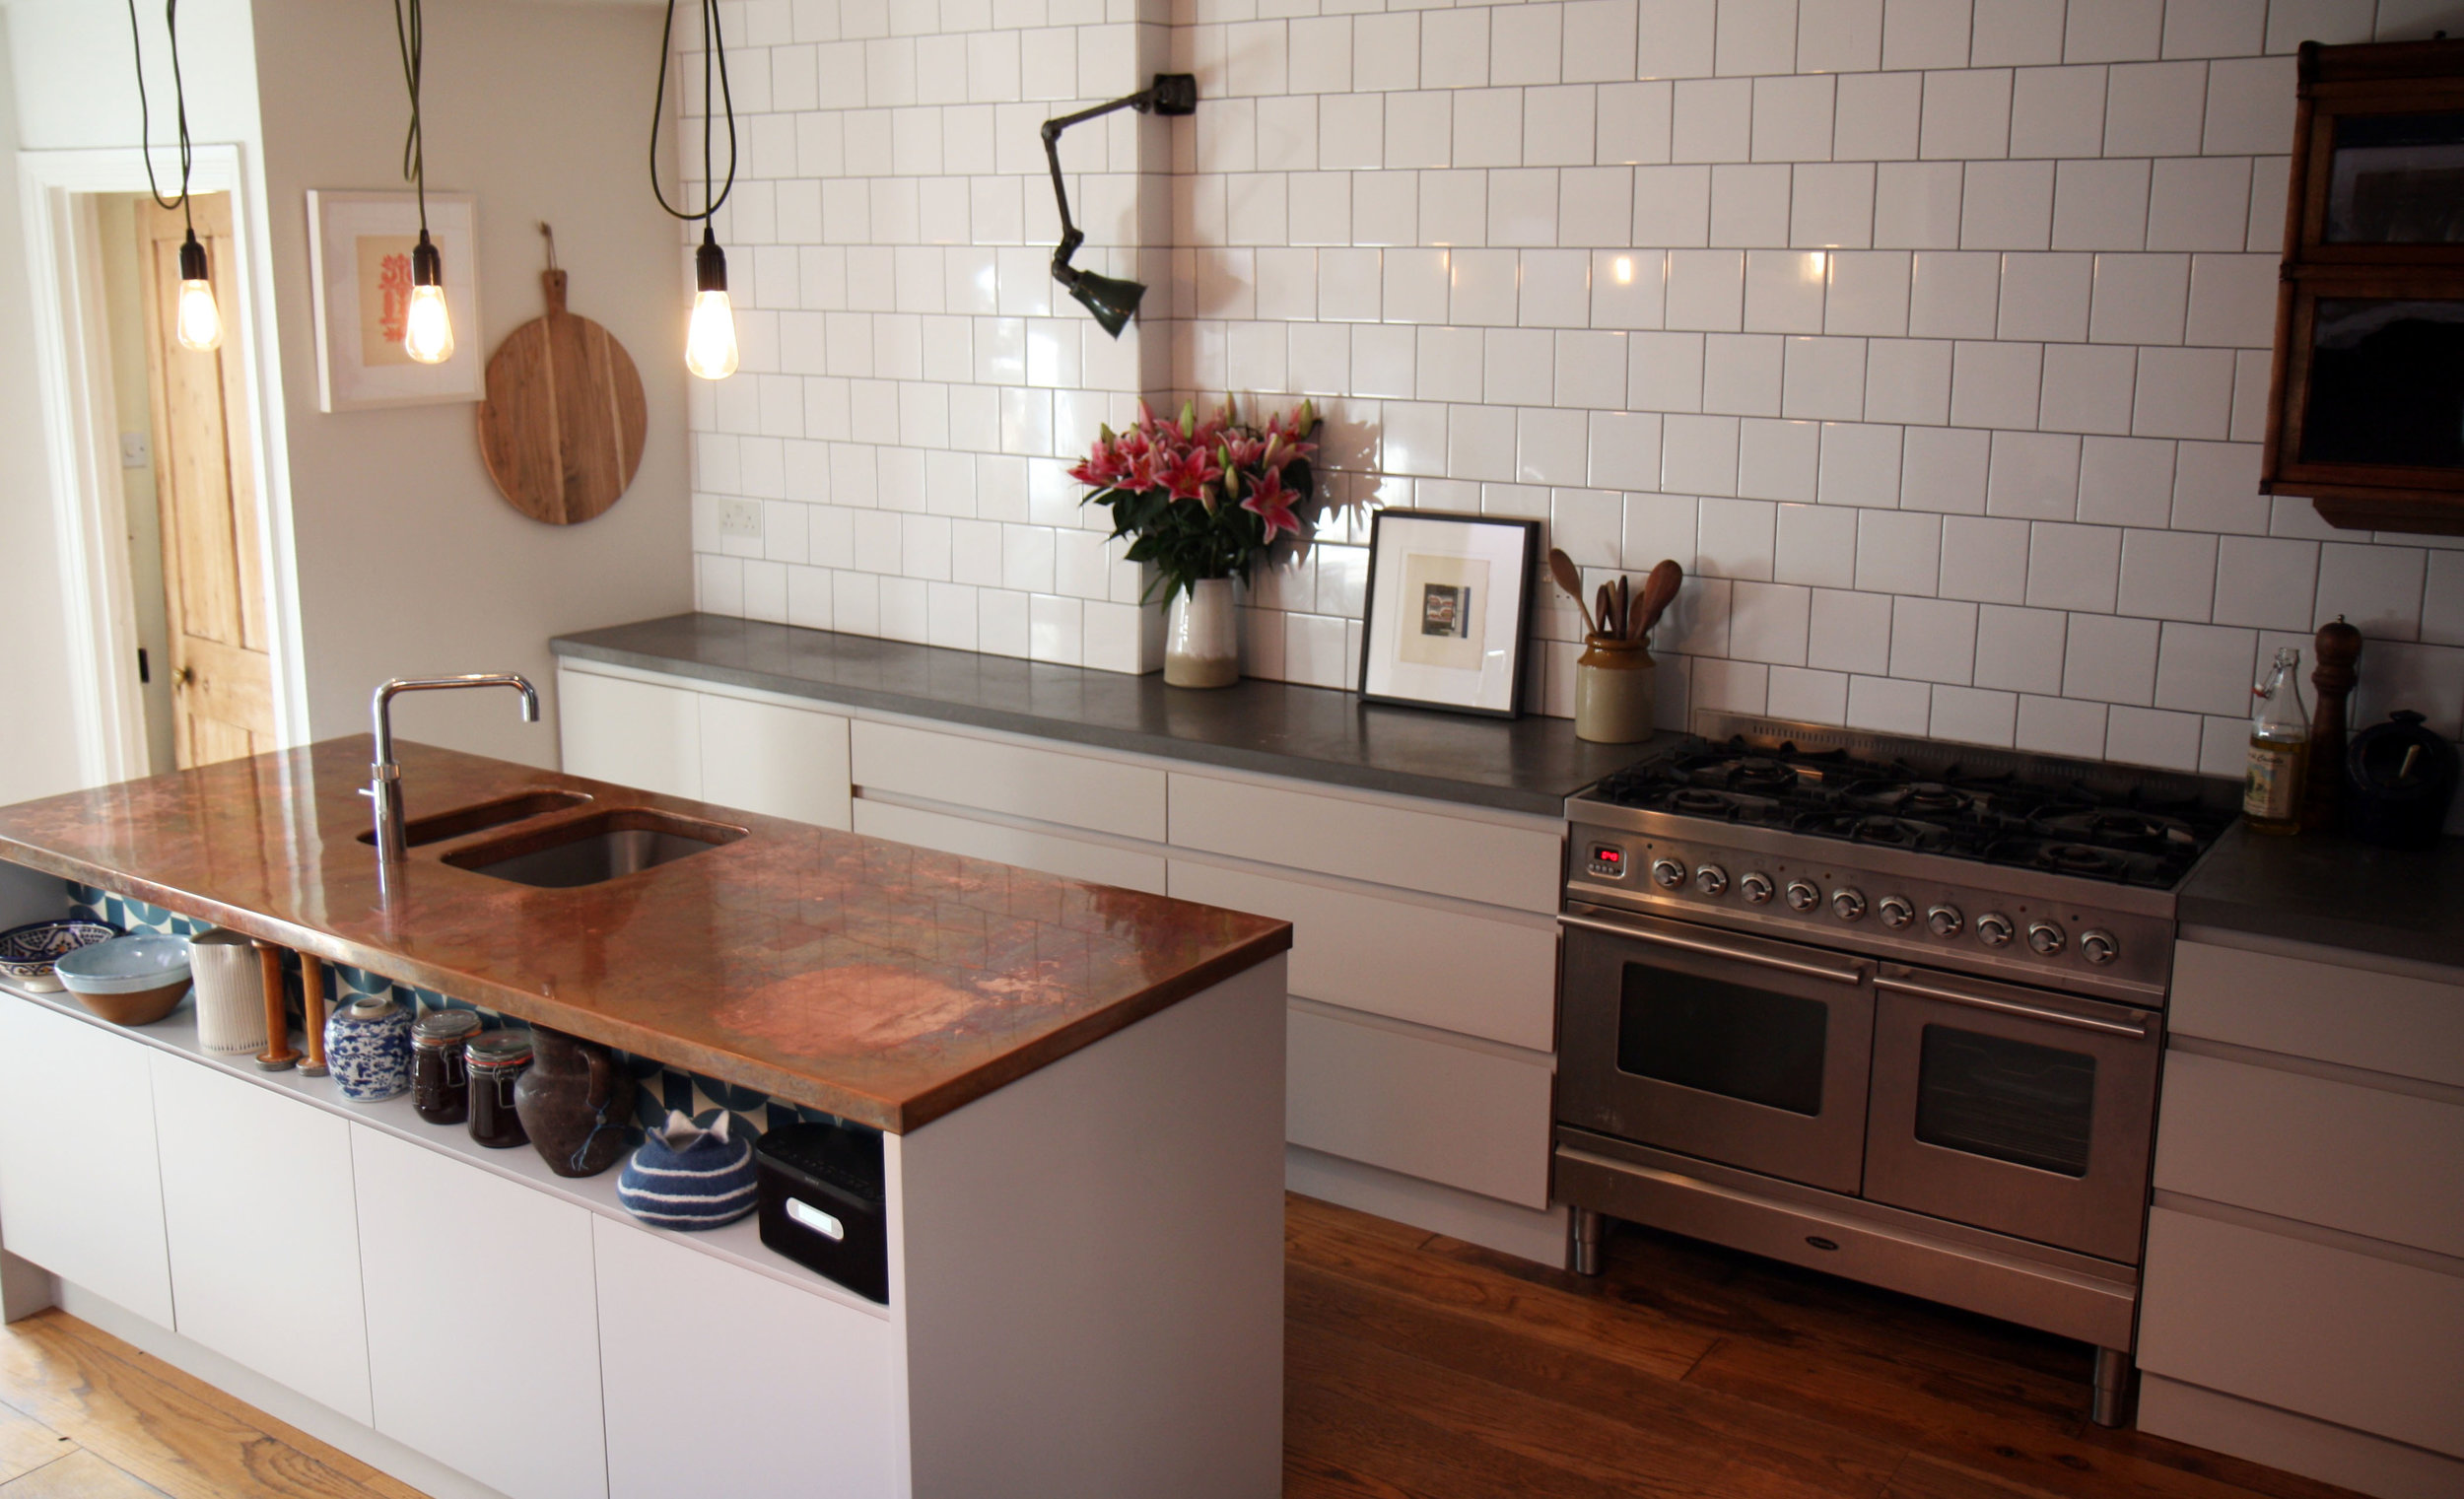 To see more of the finished kitchen, scroll through  here.